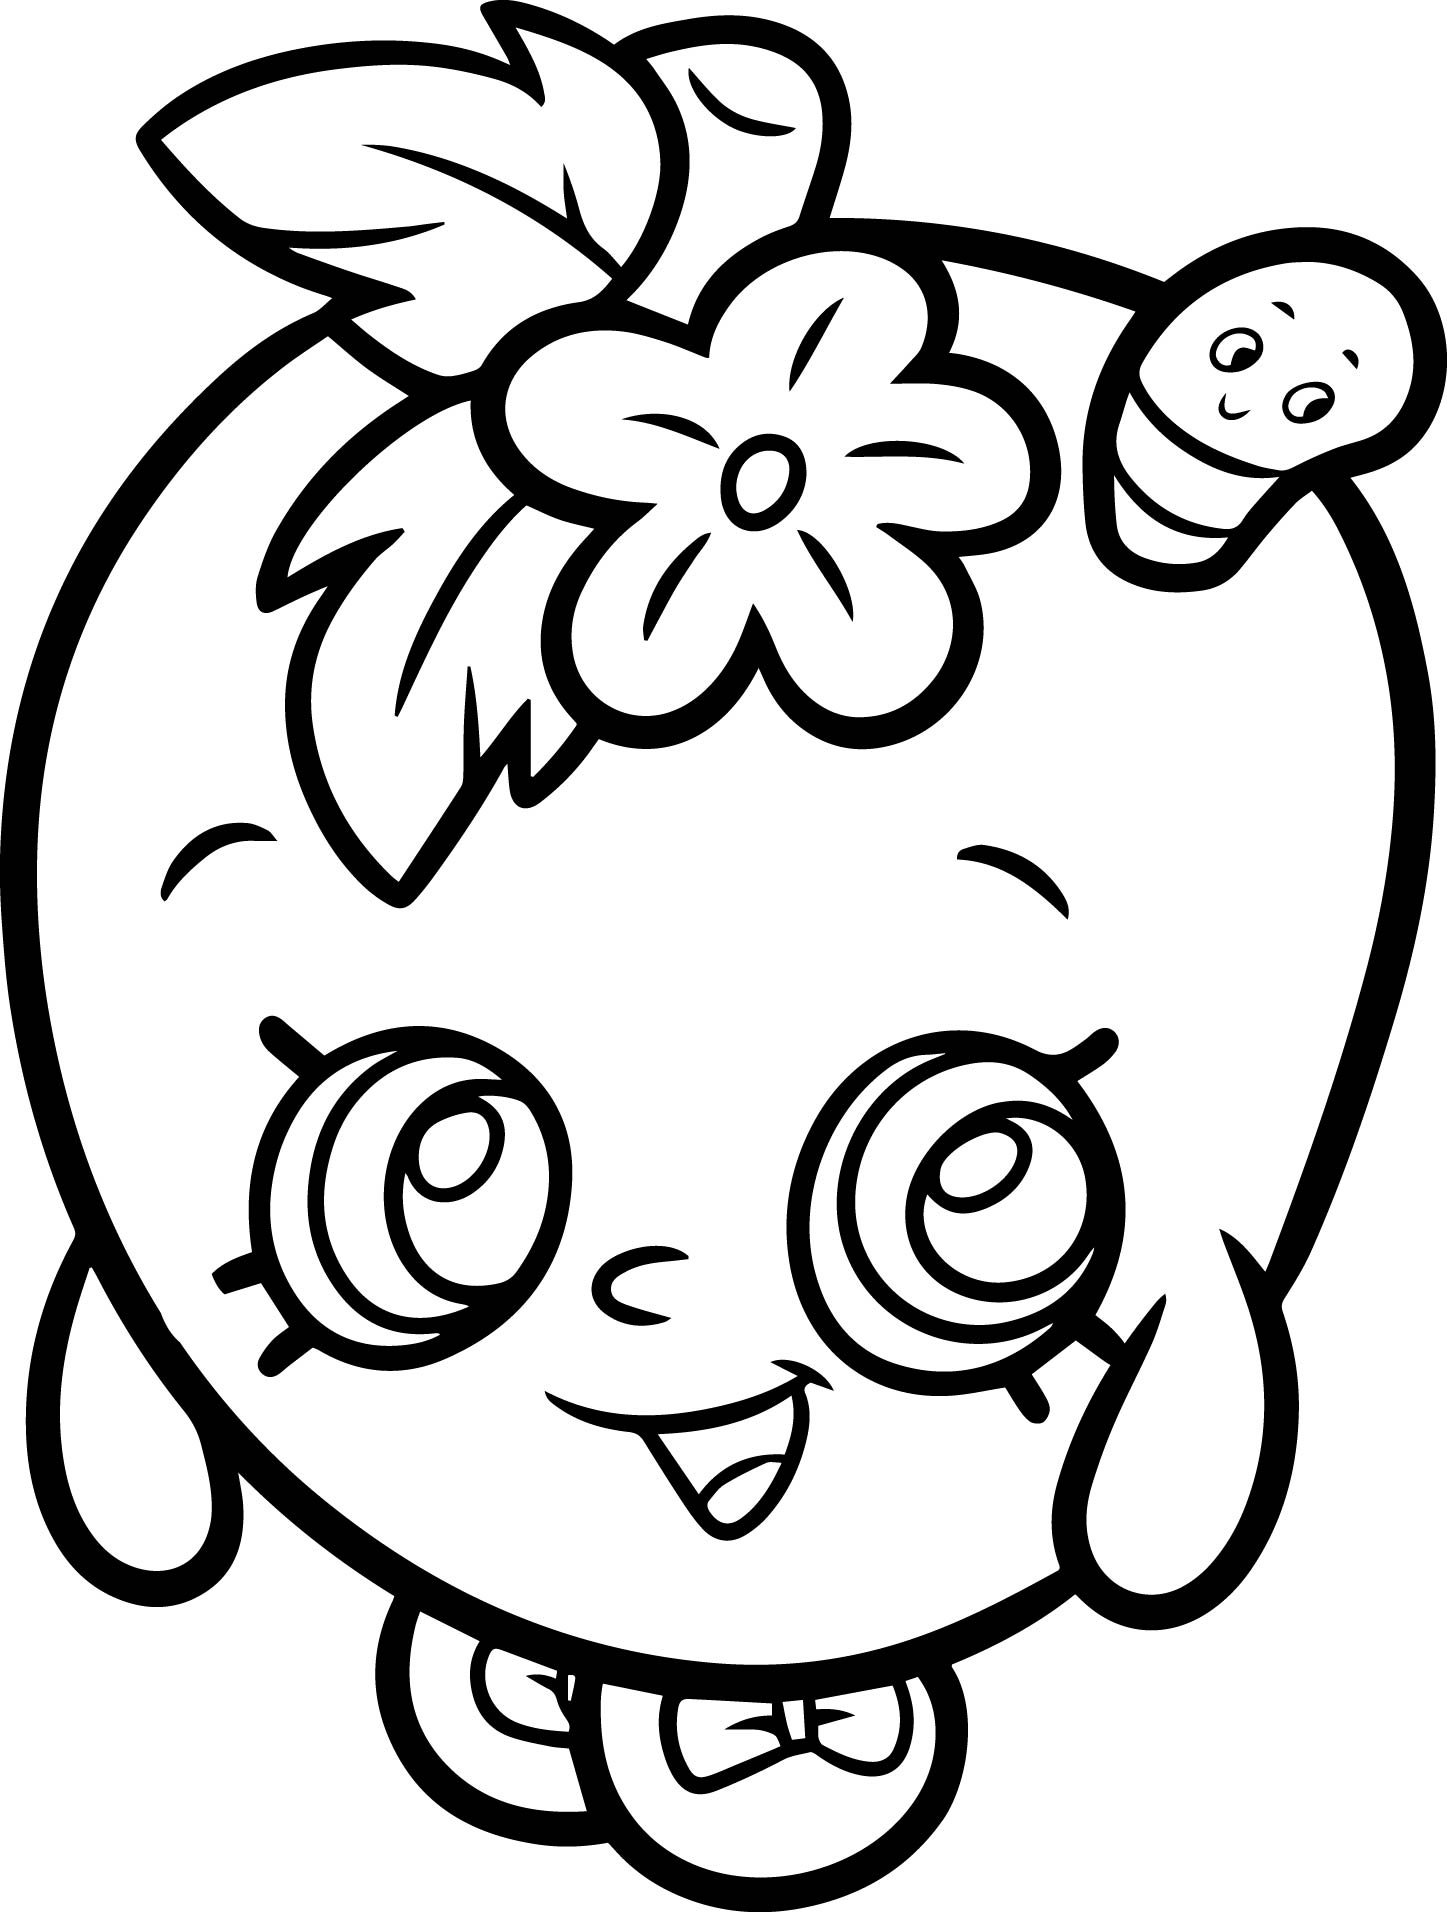 Shopkins Coloring Pages Free